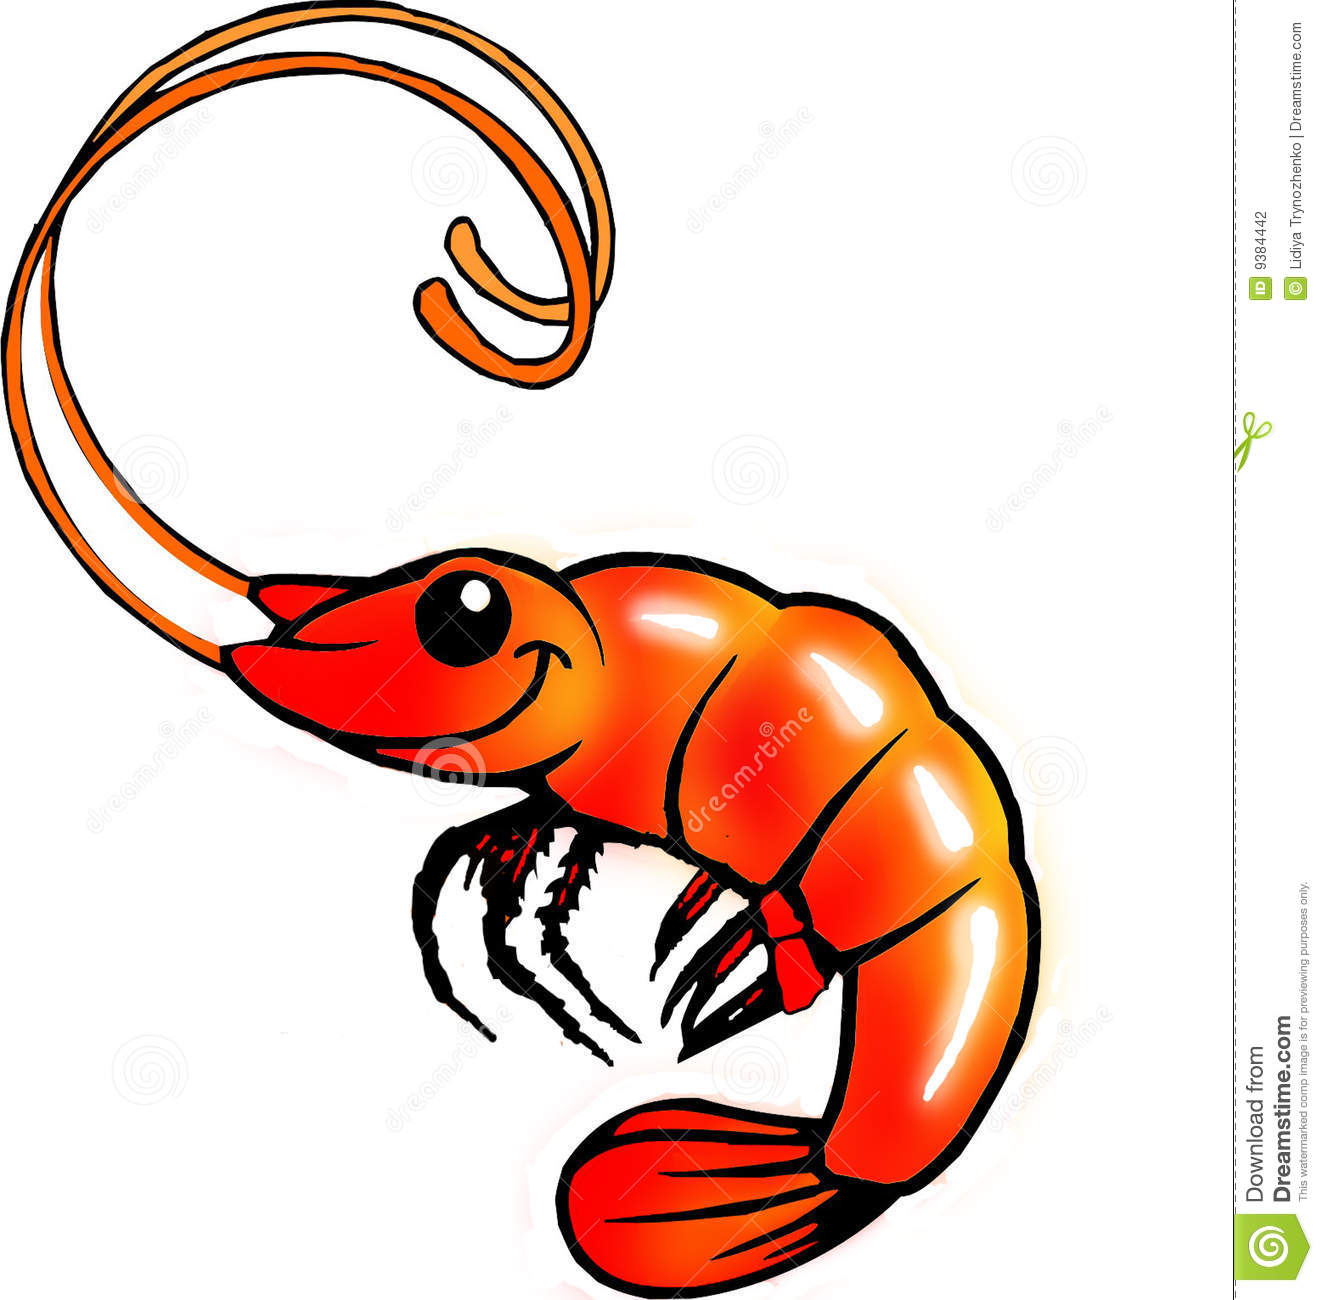 funny shrimp stock illustrations 707 funny shrimp stock rh dreamstime com Cute Shrimp Clip Art Cooked Shrimp Clip Art